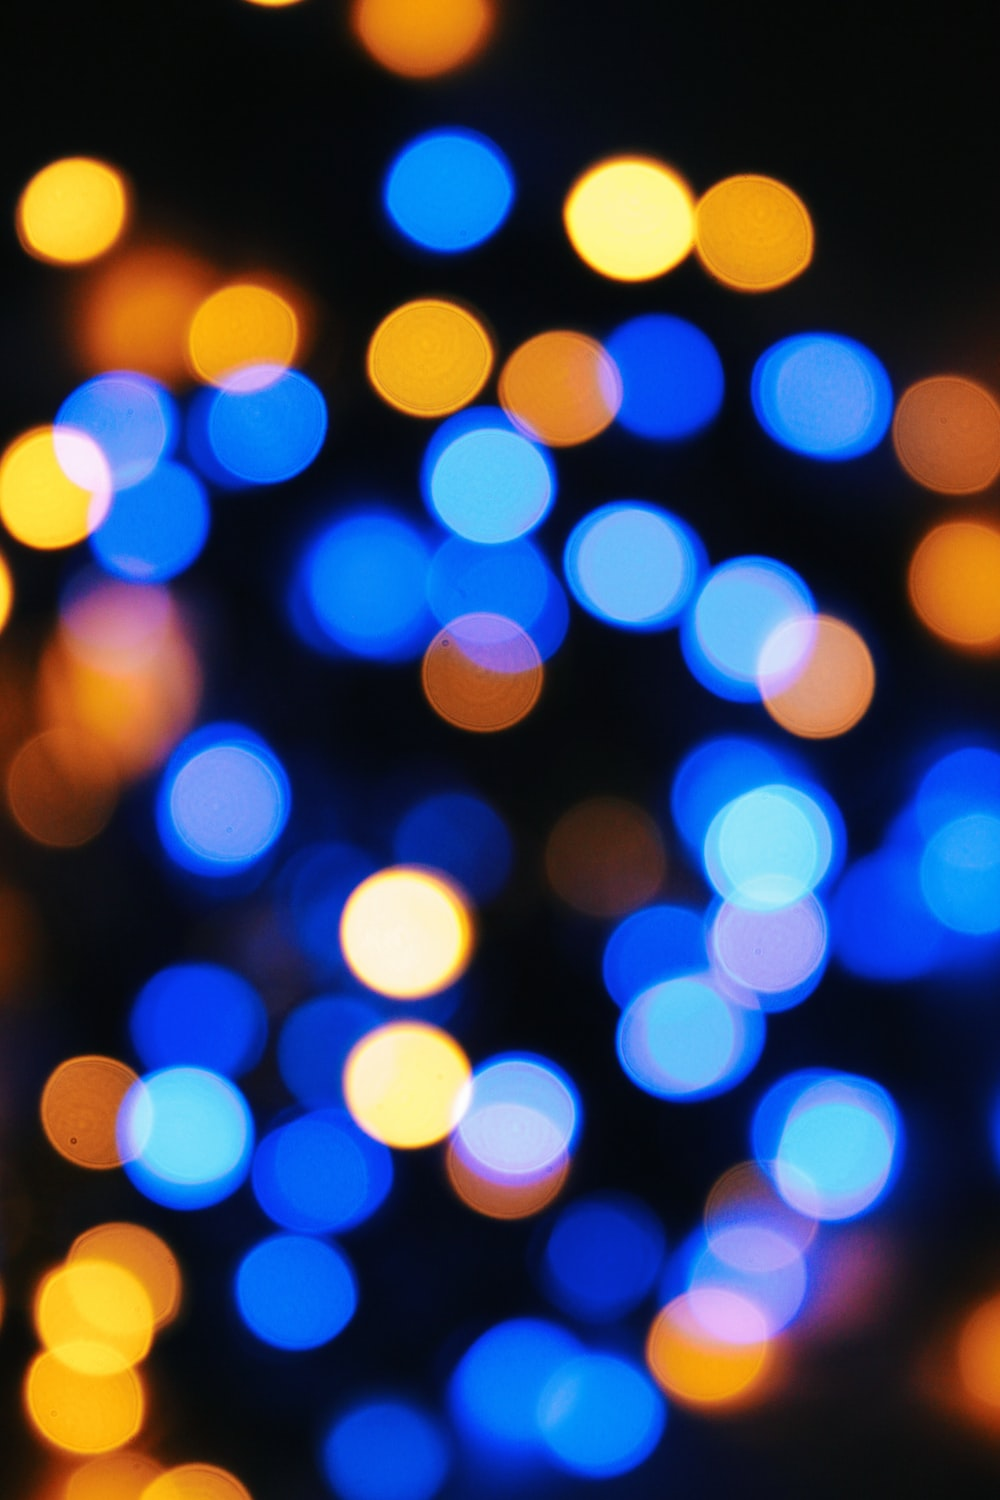 Background Hq Png - 500+ Stunning Bokeh Pictures [HD] | Download Free Images & Stock ...